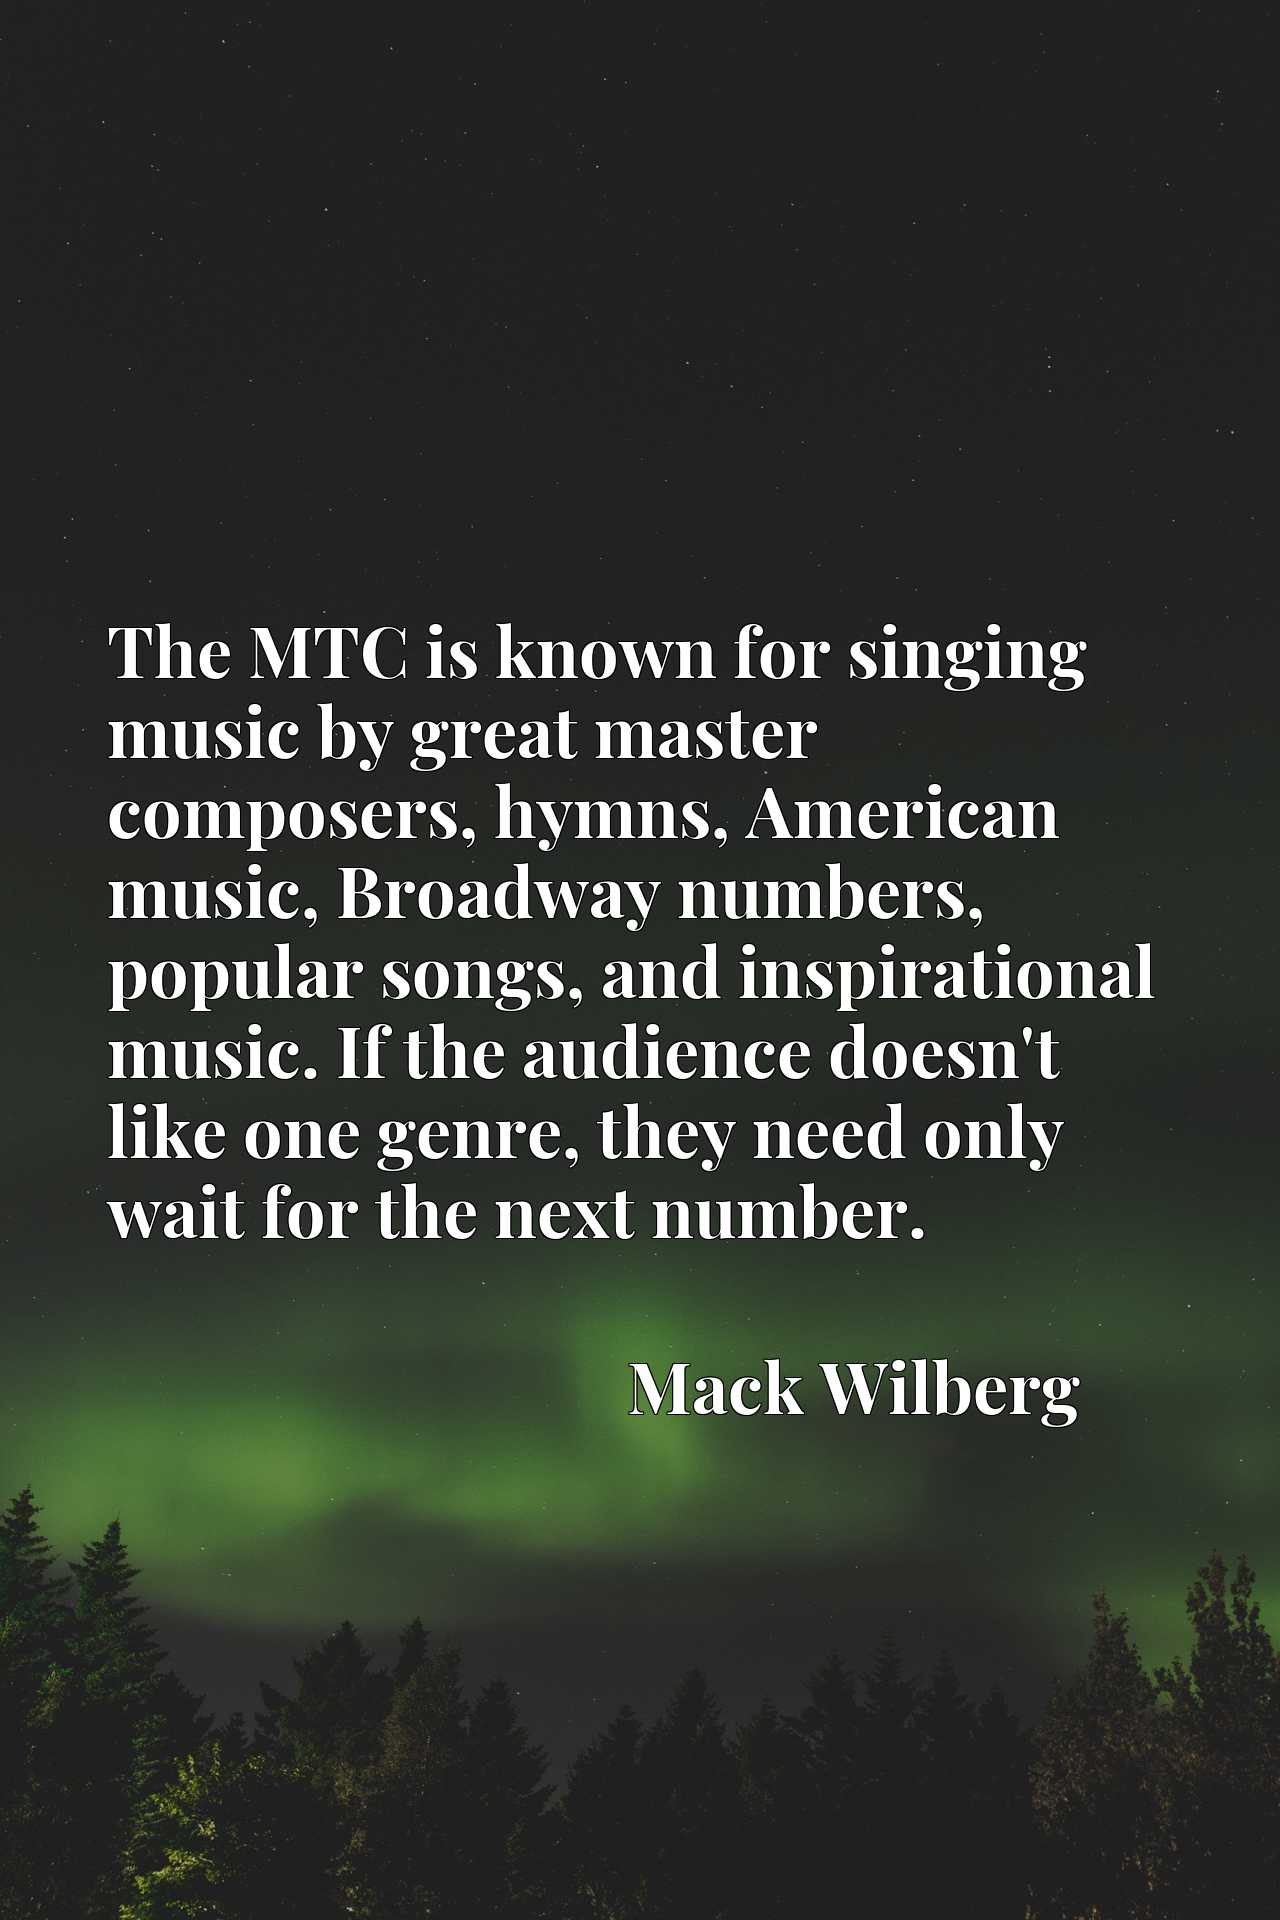 The MTC is known for singing music by great master composers, hymns, American music, Broadway numbers, popular songs, and inspirational music. If the audience doesn't like one genre, they need only wait for the next number.